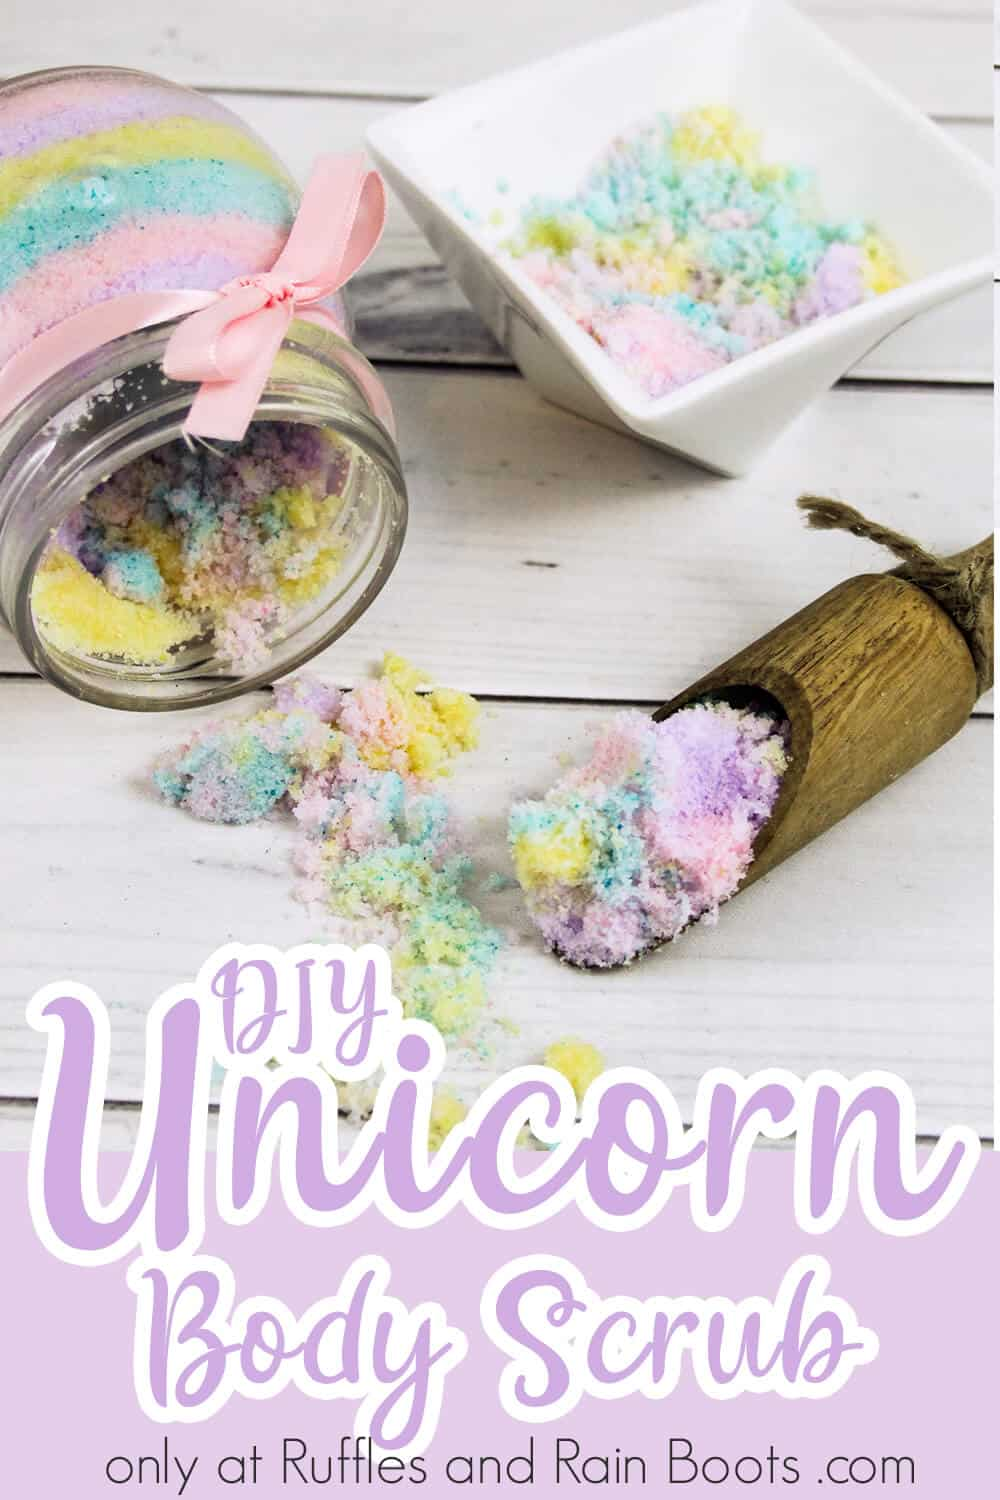 close-up of spilled jar and scoop of diy sugar scrub with text which reads diy unicorn body scrub